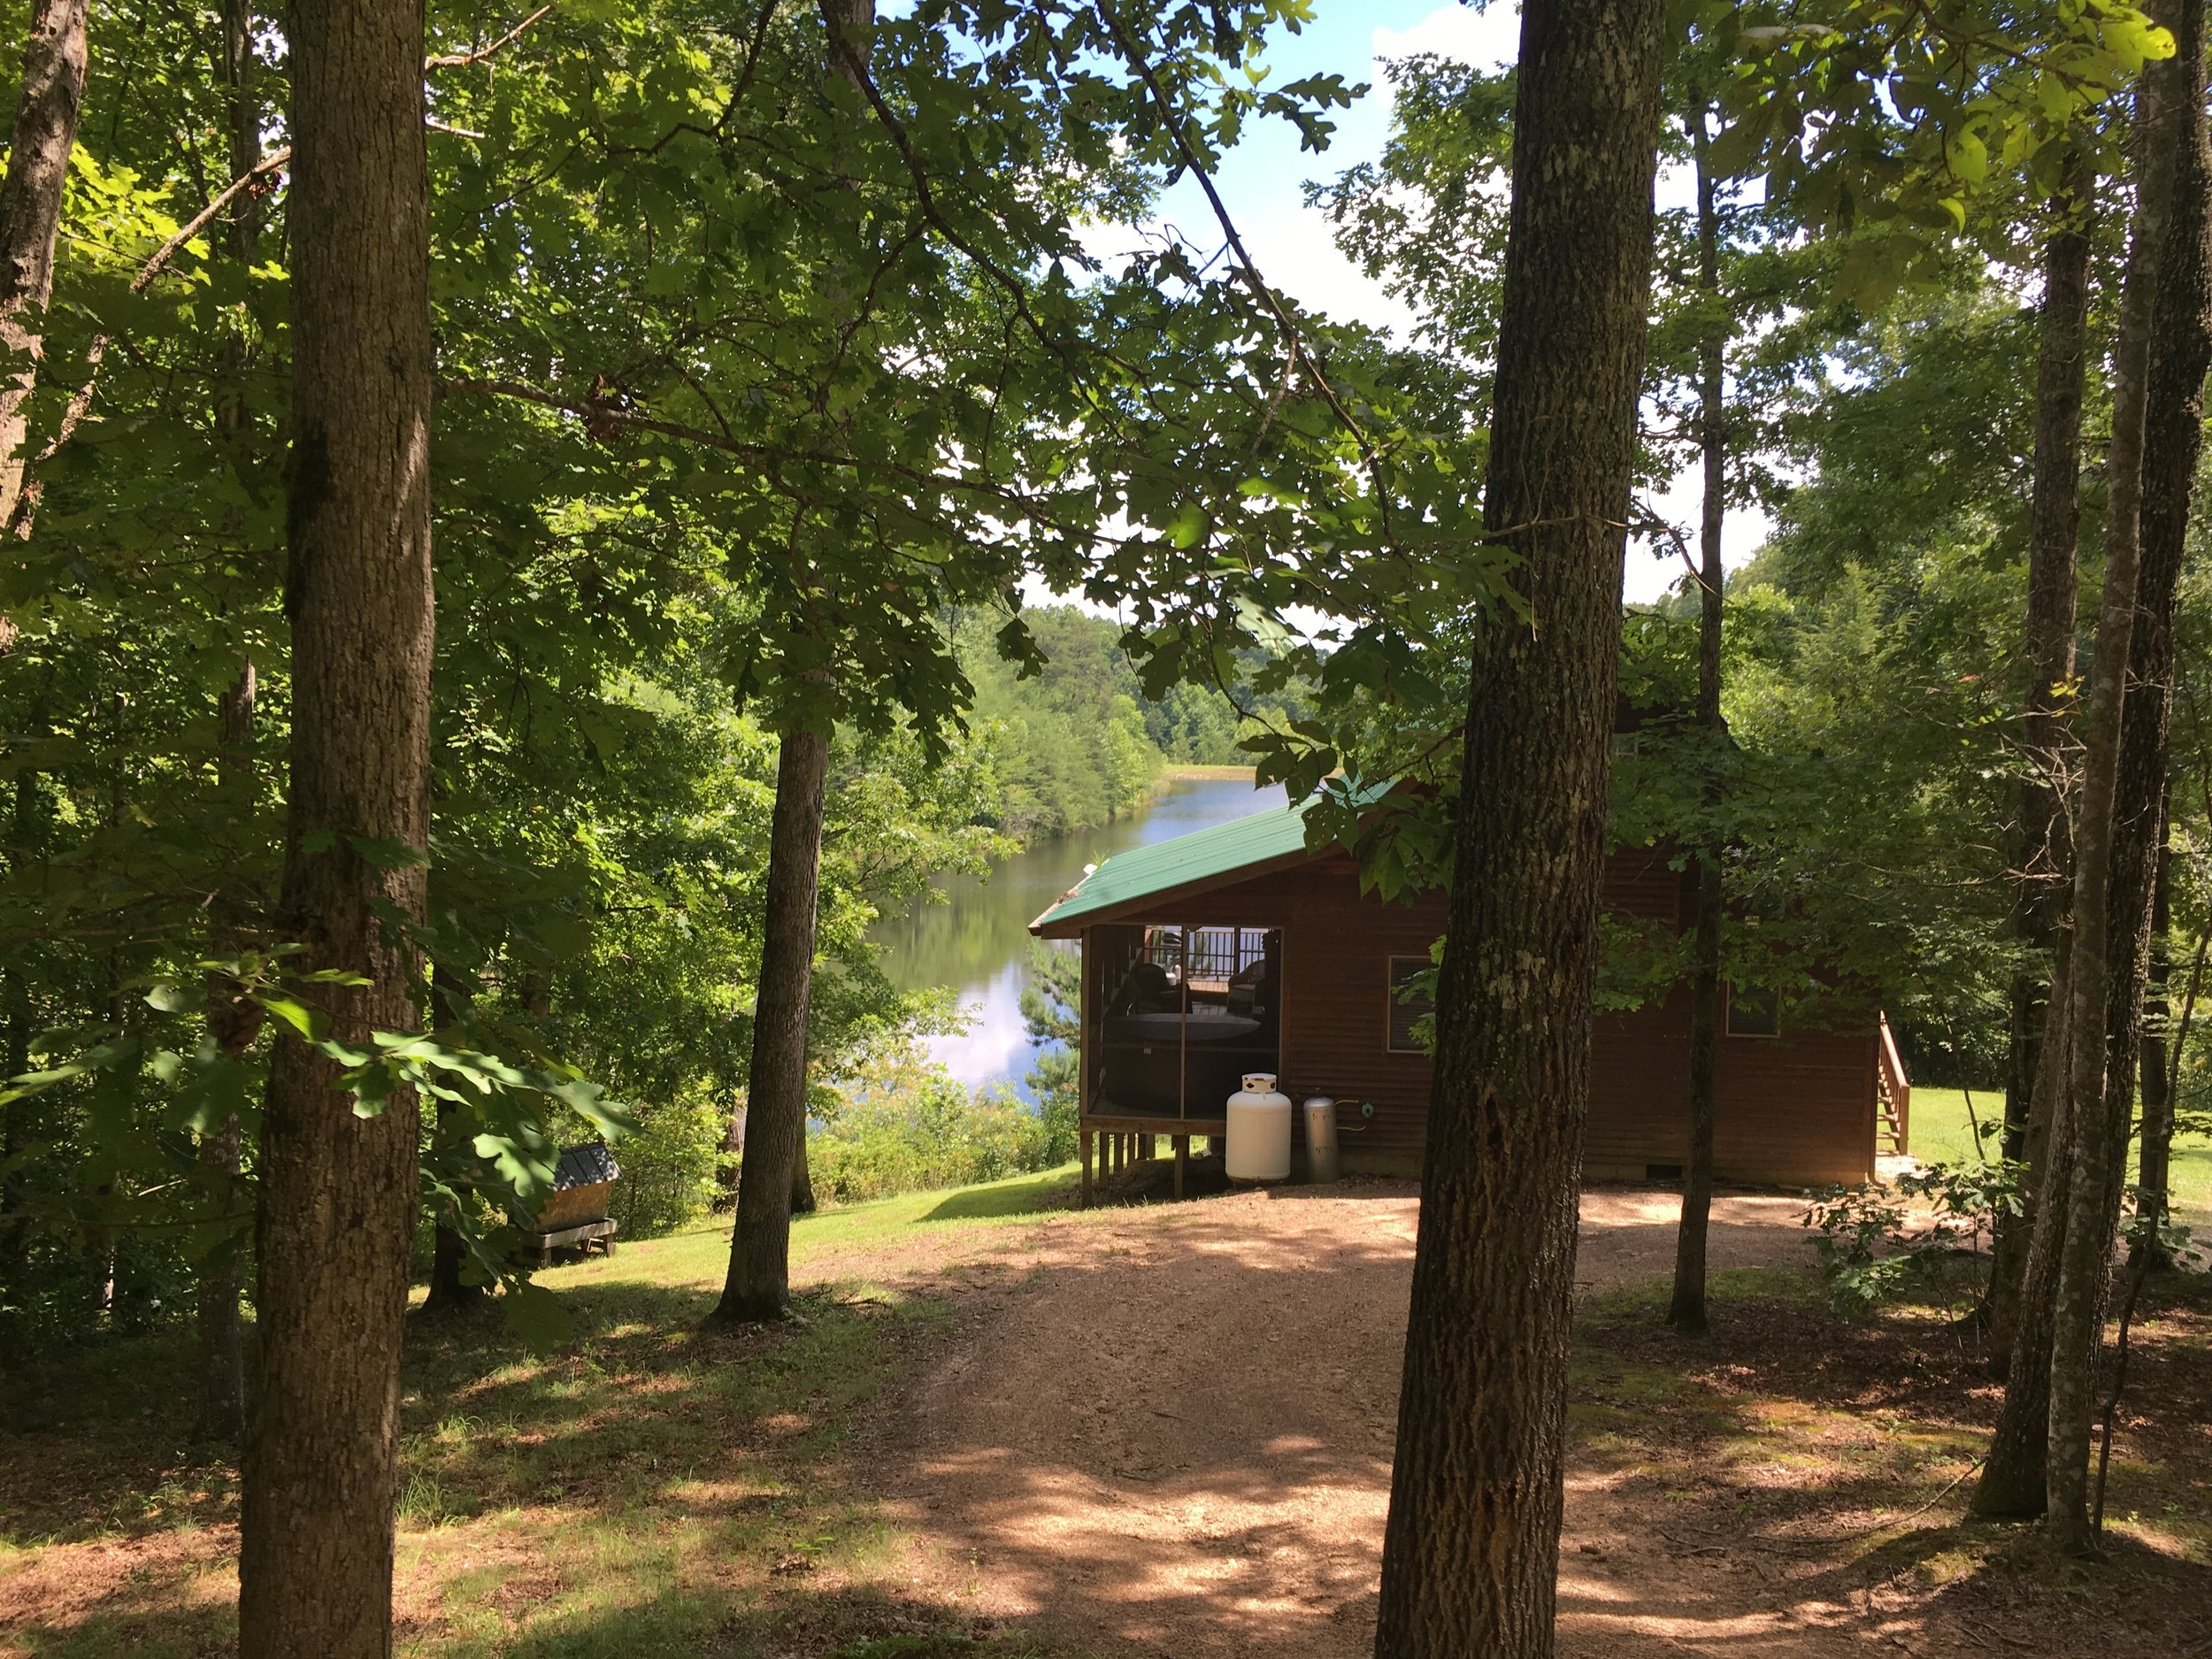 One of the beautiful cabins in the woods at Lago Linda